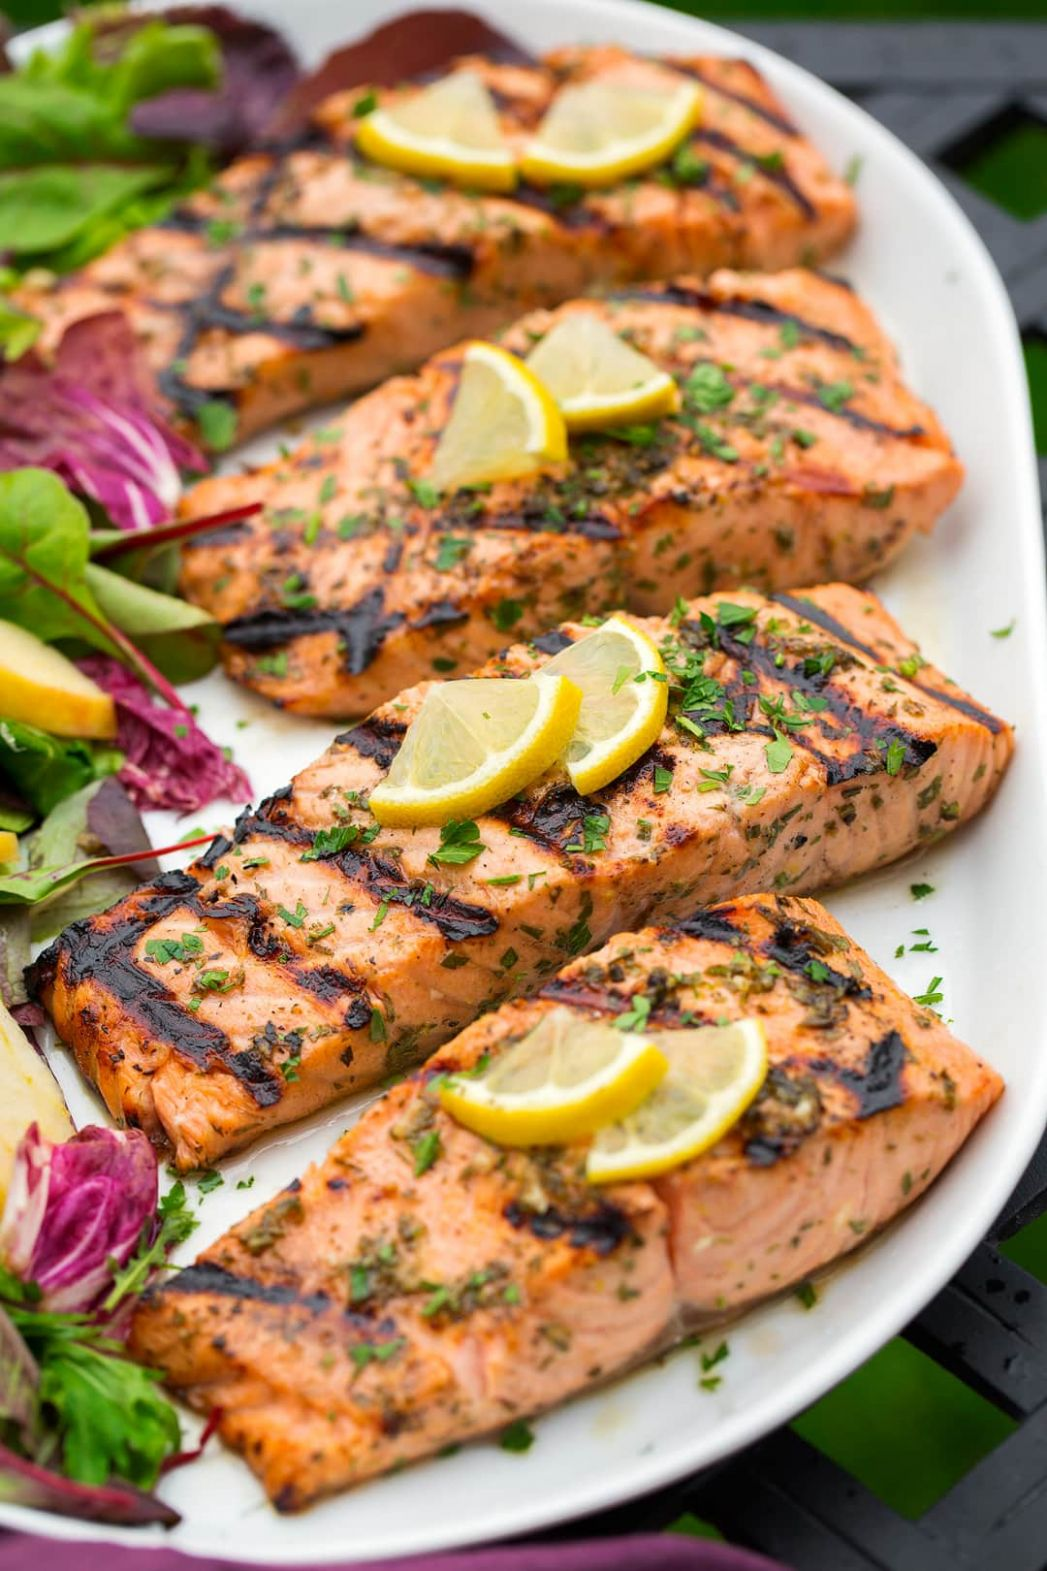 Lemon Garlic Herb Grilled Salmon - Recipes Fish Salmon